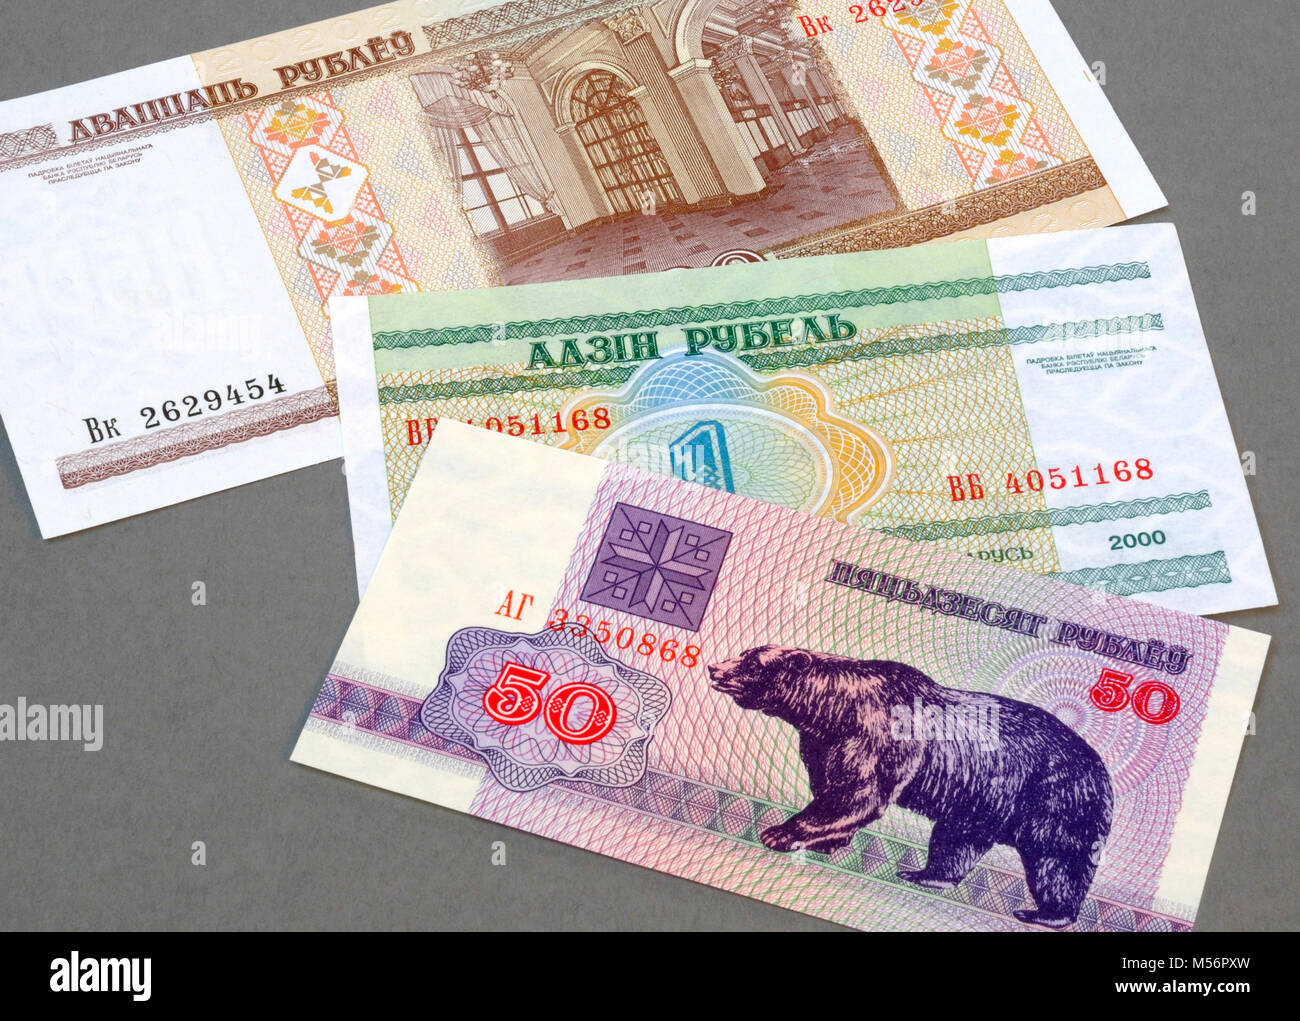 Belarus Rouble Currency Bank Notes Stock Photo